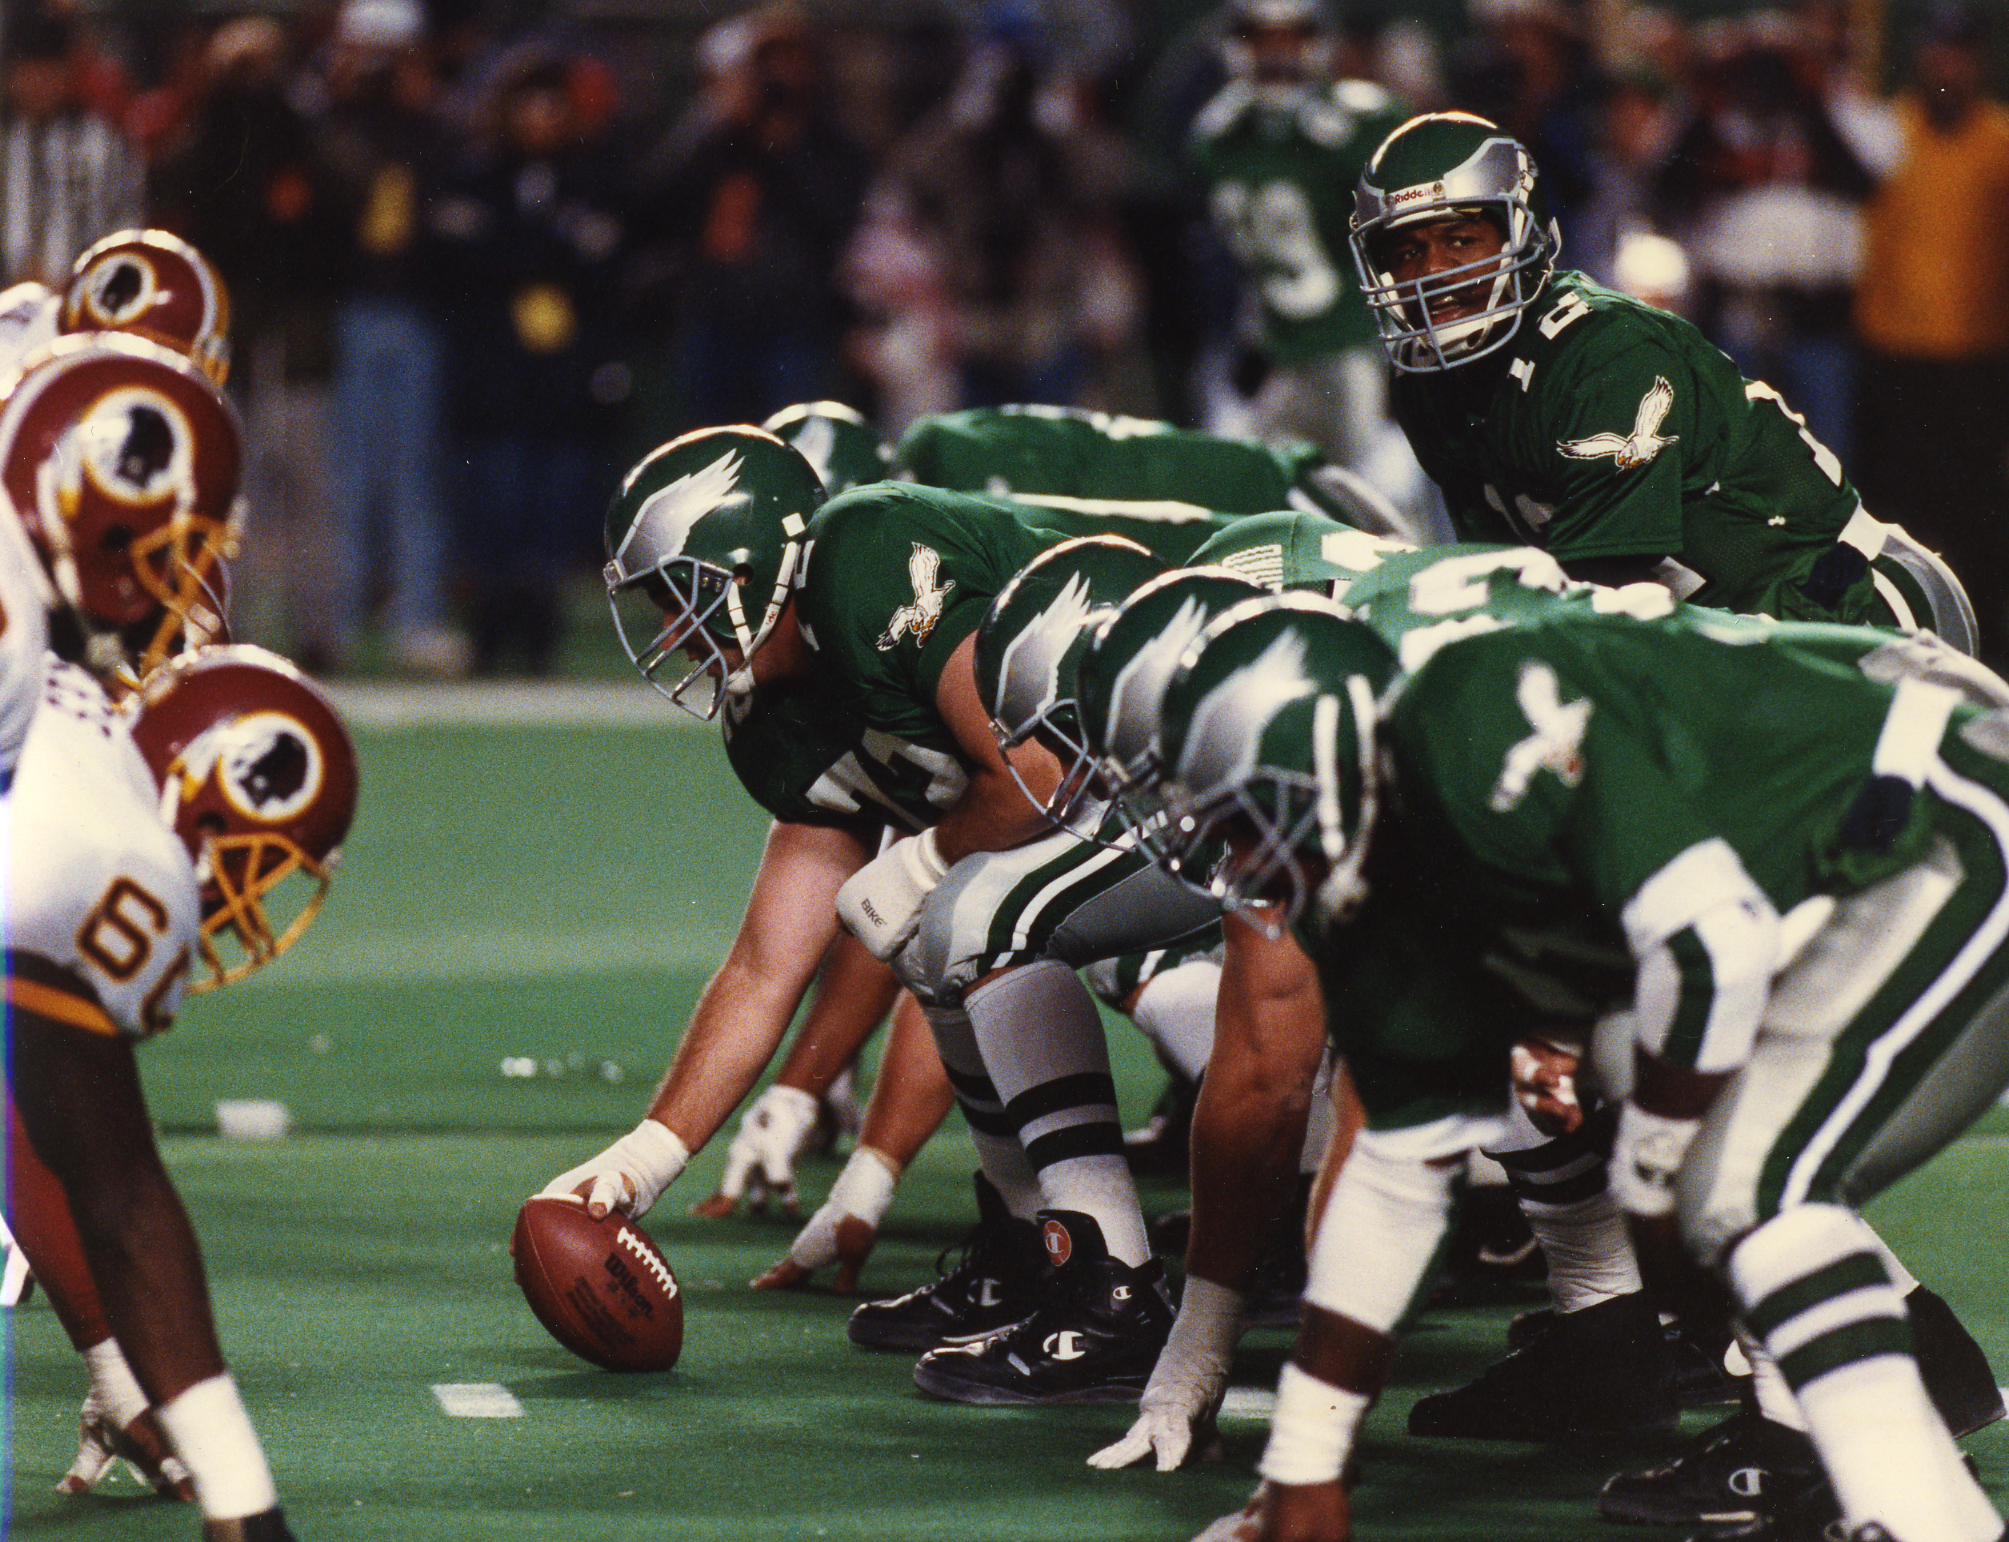 Randall Cunningham, after signing a record contract extension worth $18 million in the morning, threw 447 yards and five touchdowns in the afternoon on Sept. 18, 1989 at Washington´s RFK Stadium. Photo courtesy of the Philadelphia Eagles.